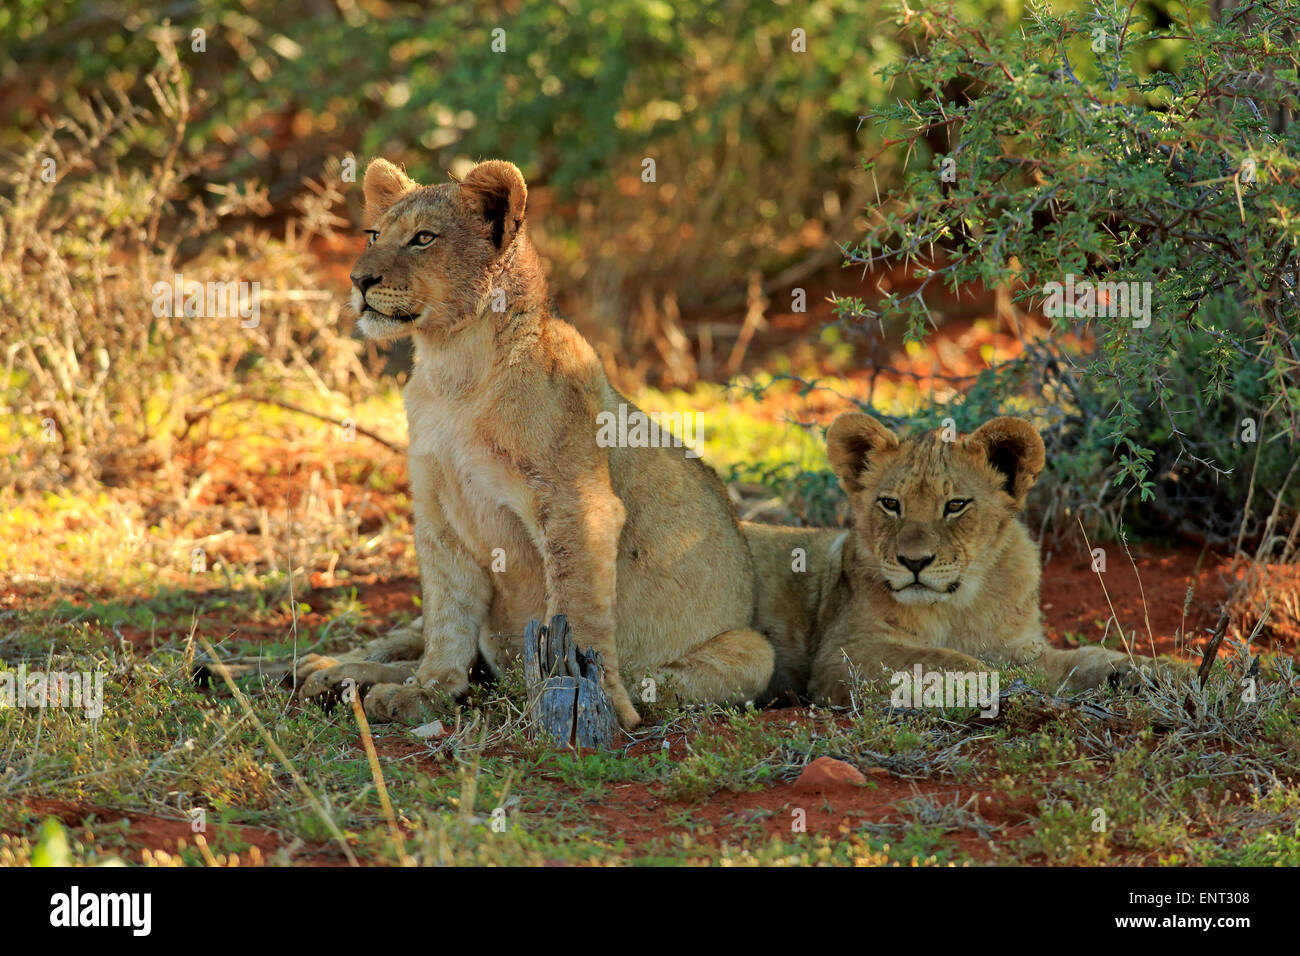 Lions (Panthera leo), two cubs, four months, siblings, Tswalu Game Reserve, Kalahari Desert, North Cape, South Africa - Stock Image